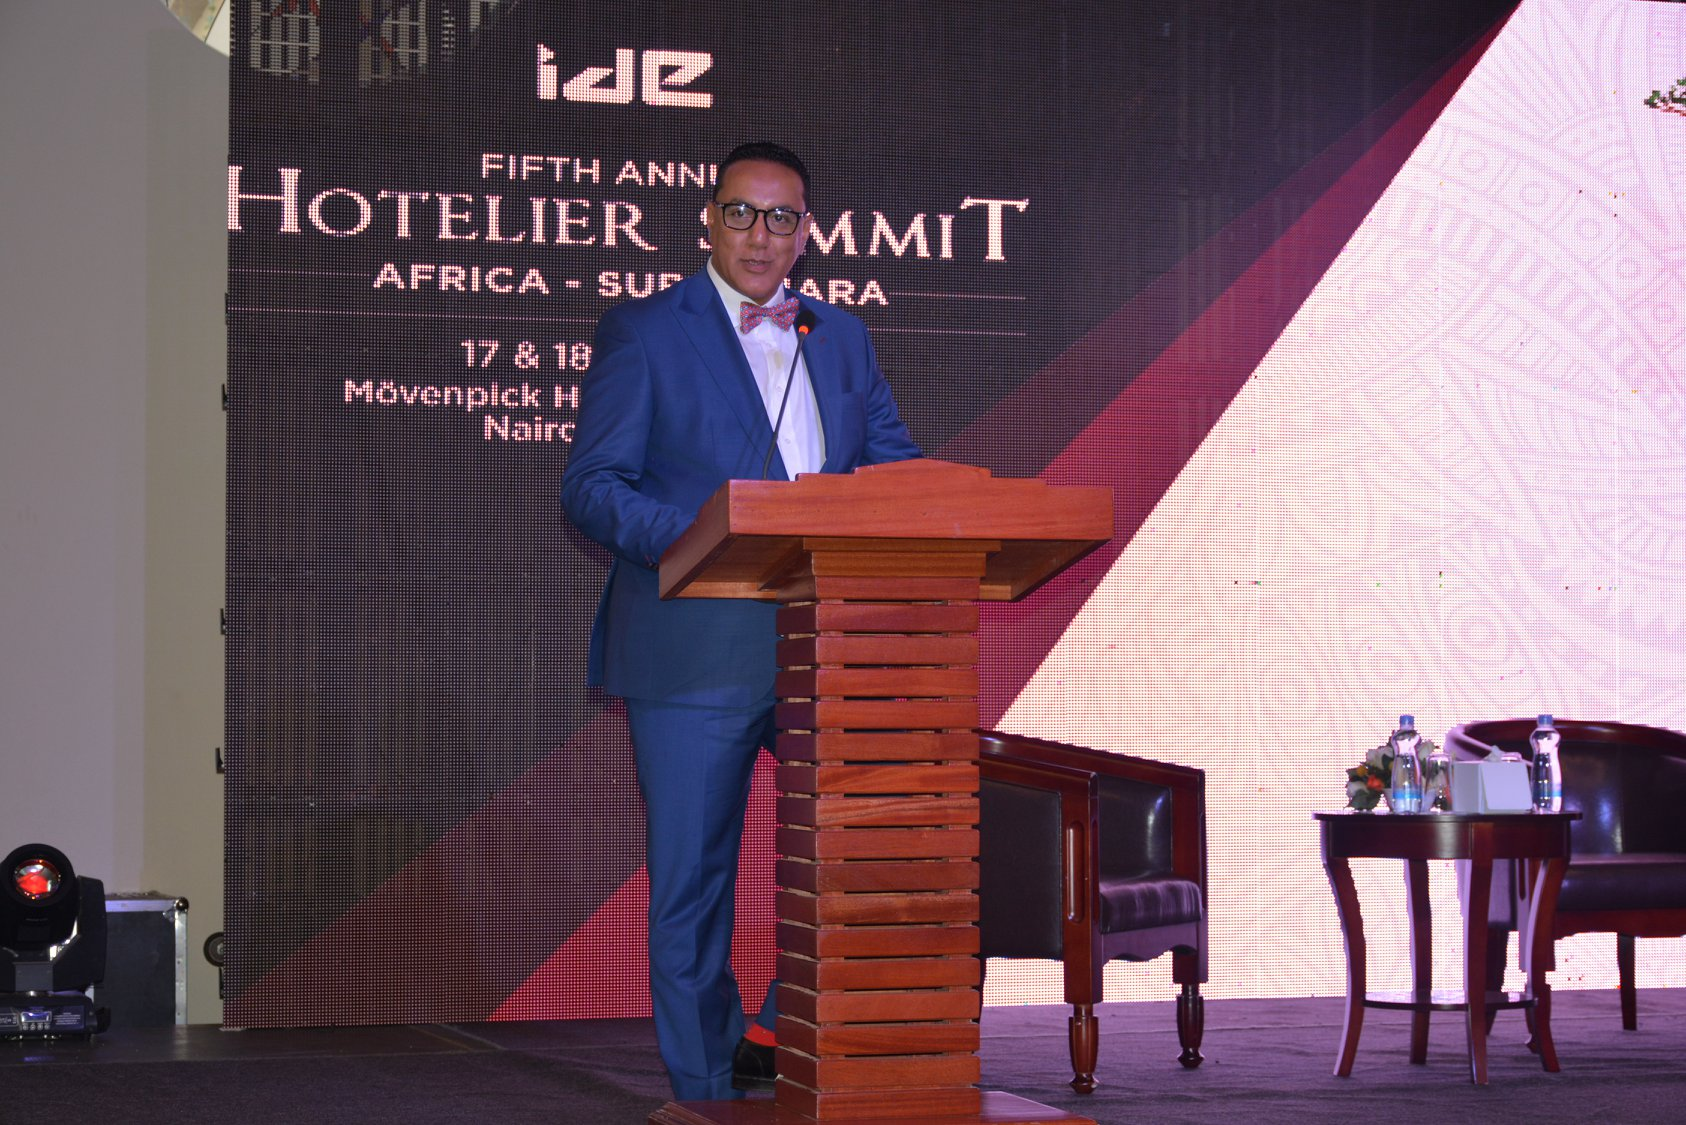 5th Annual Hotelier Summit Africa – Sub-Sahara 2018 Opens in Nairobi